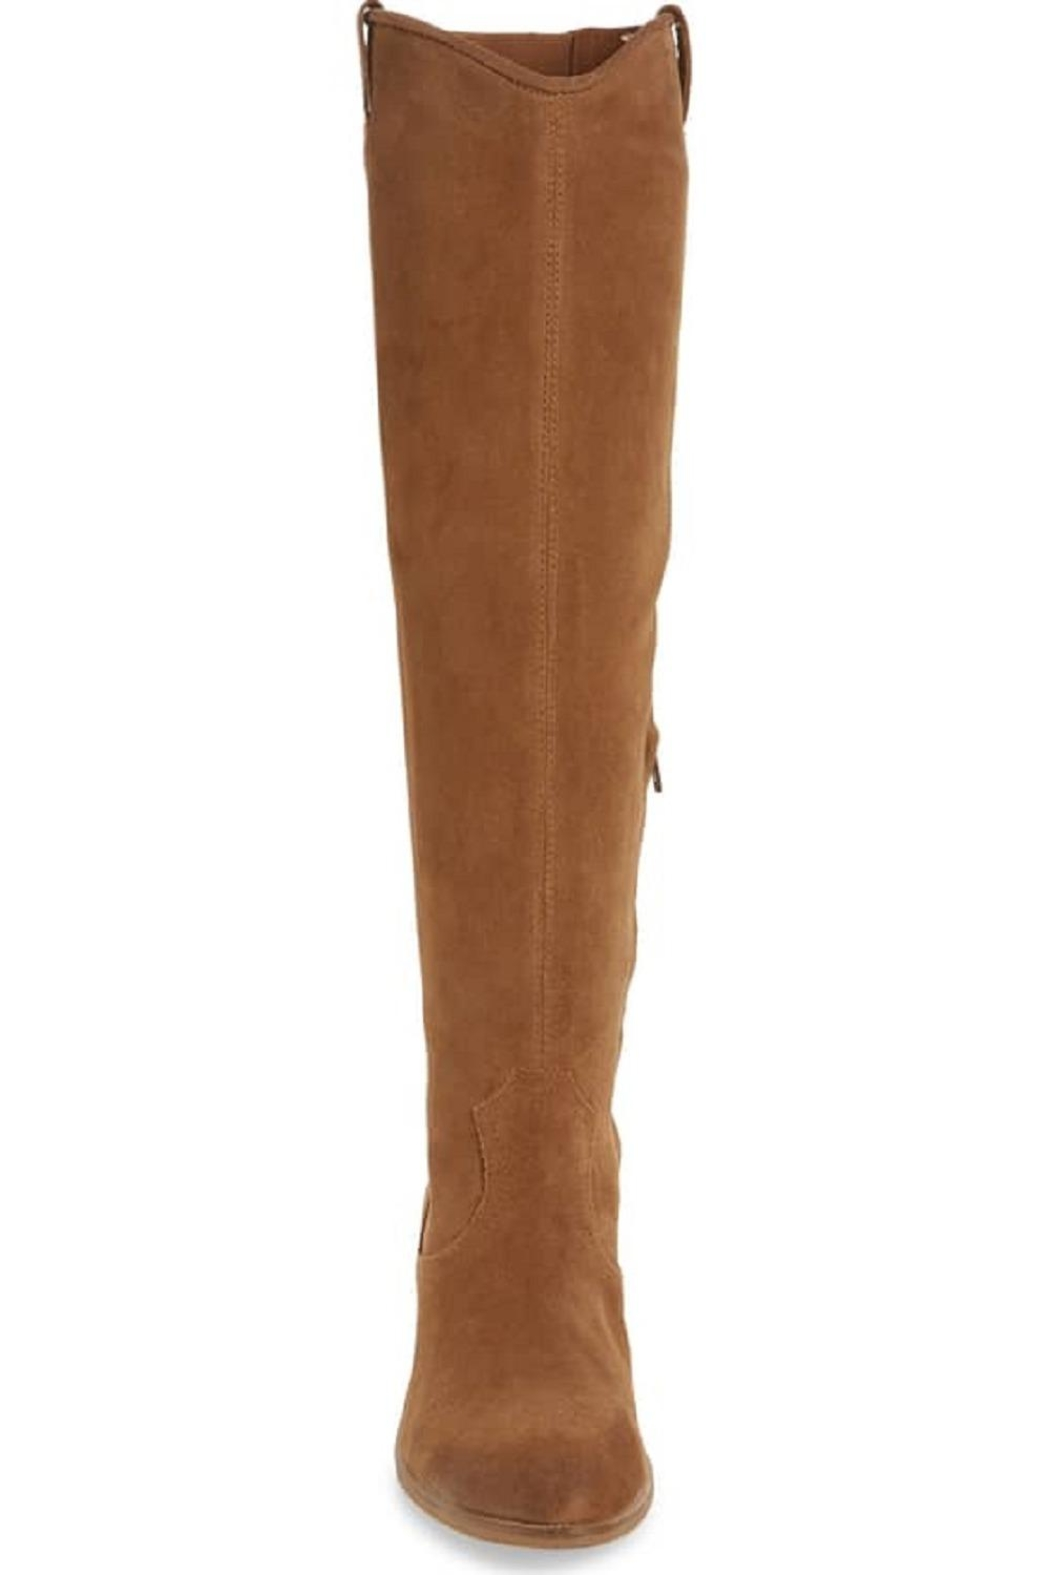 Sbicca vintage collection Over Knee Boot - Side Cropped Image